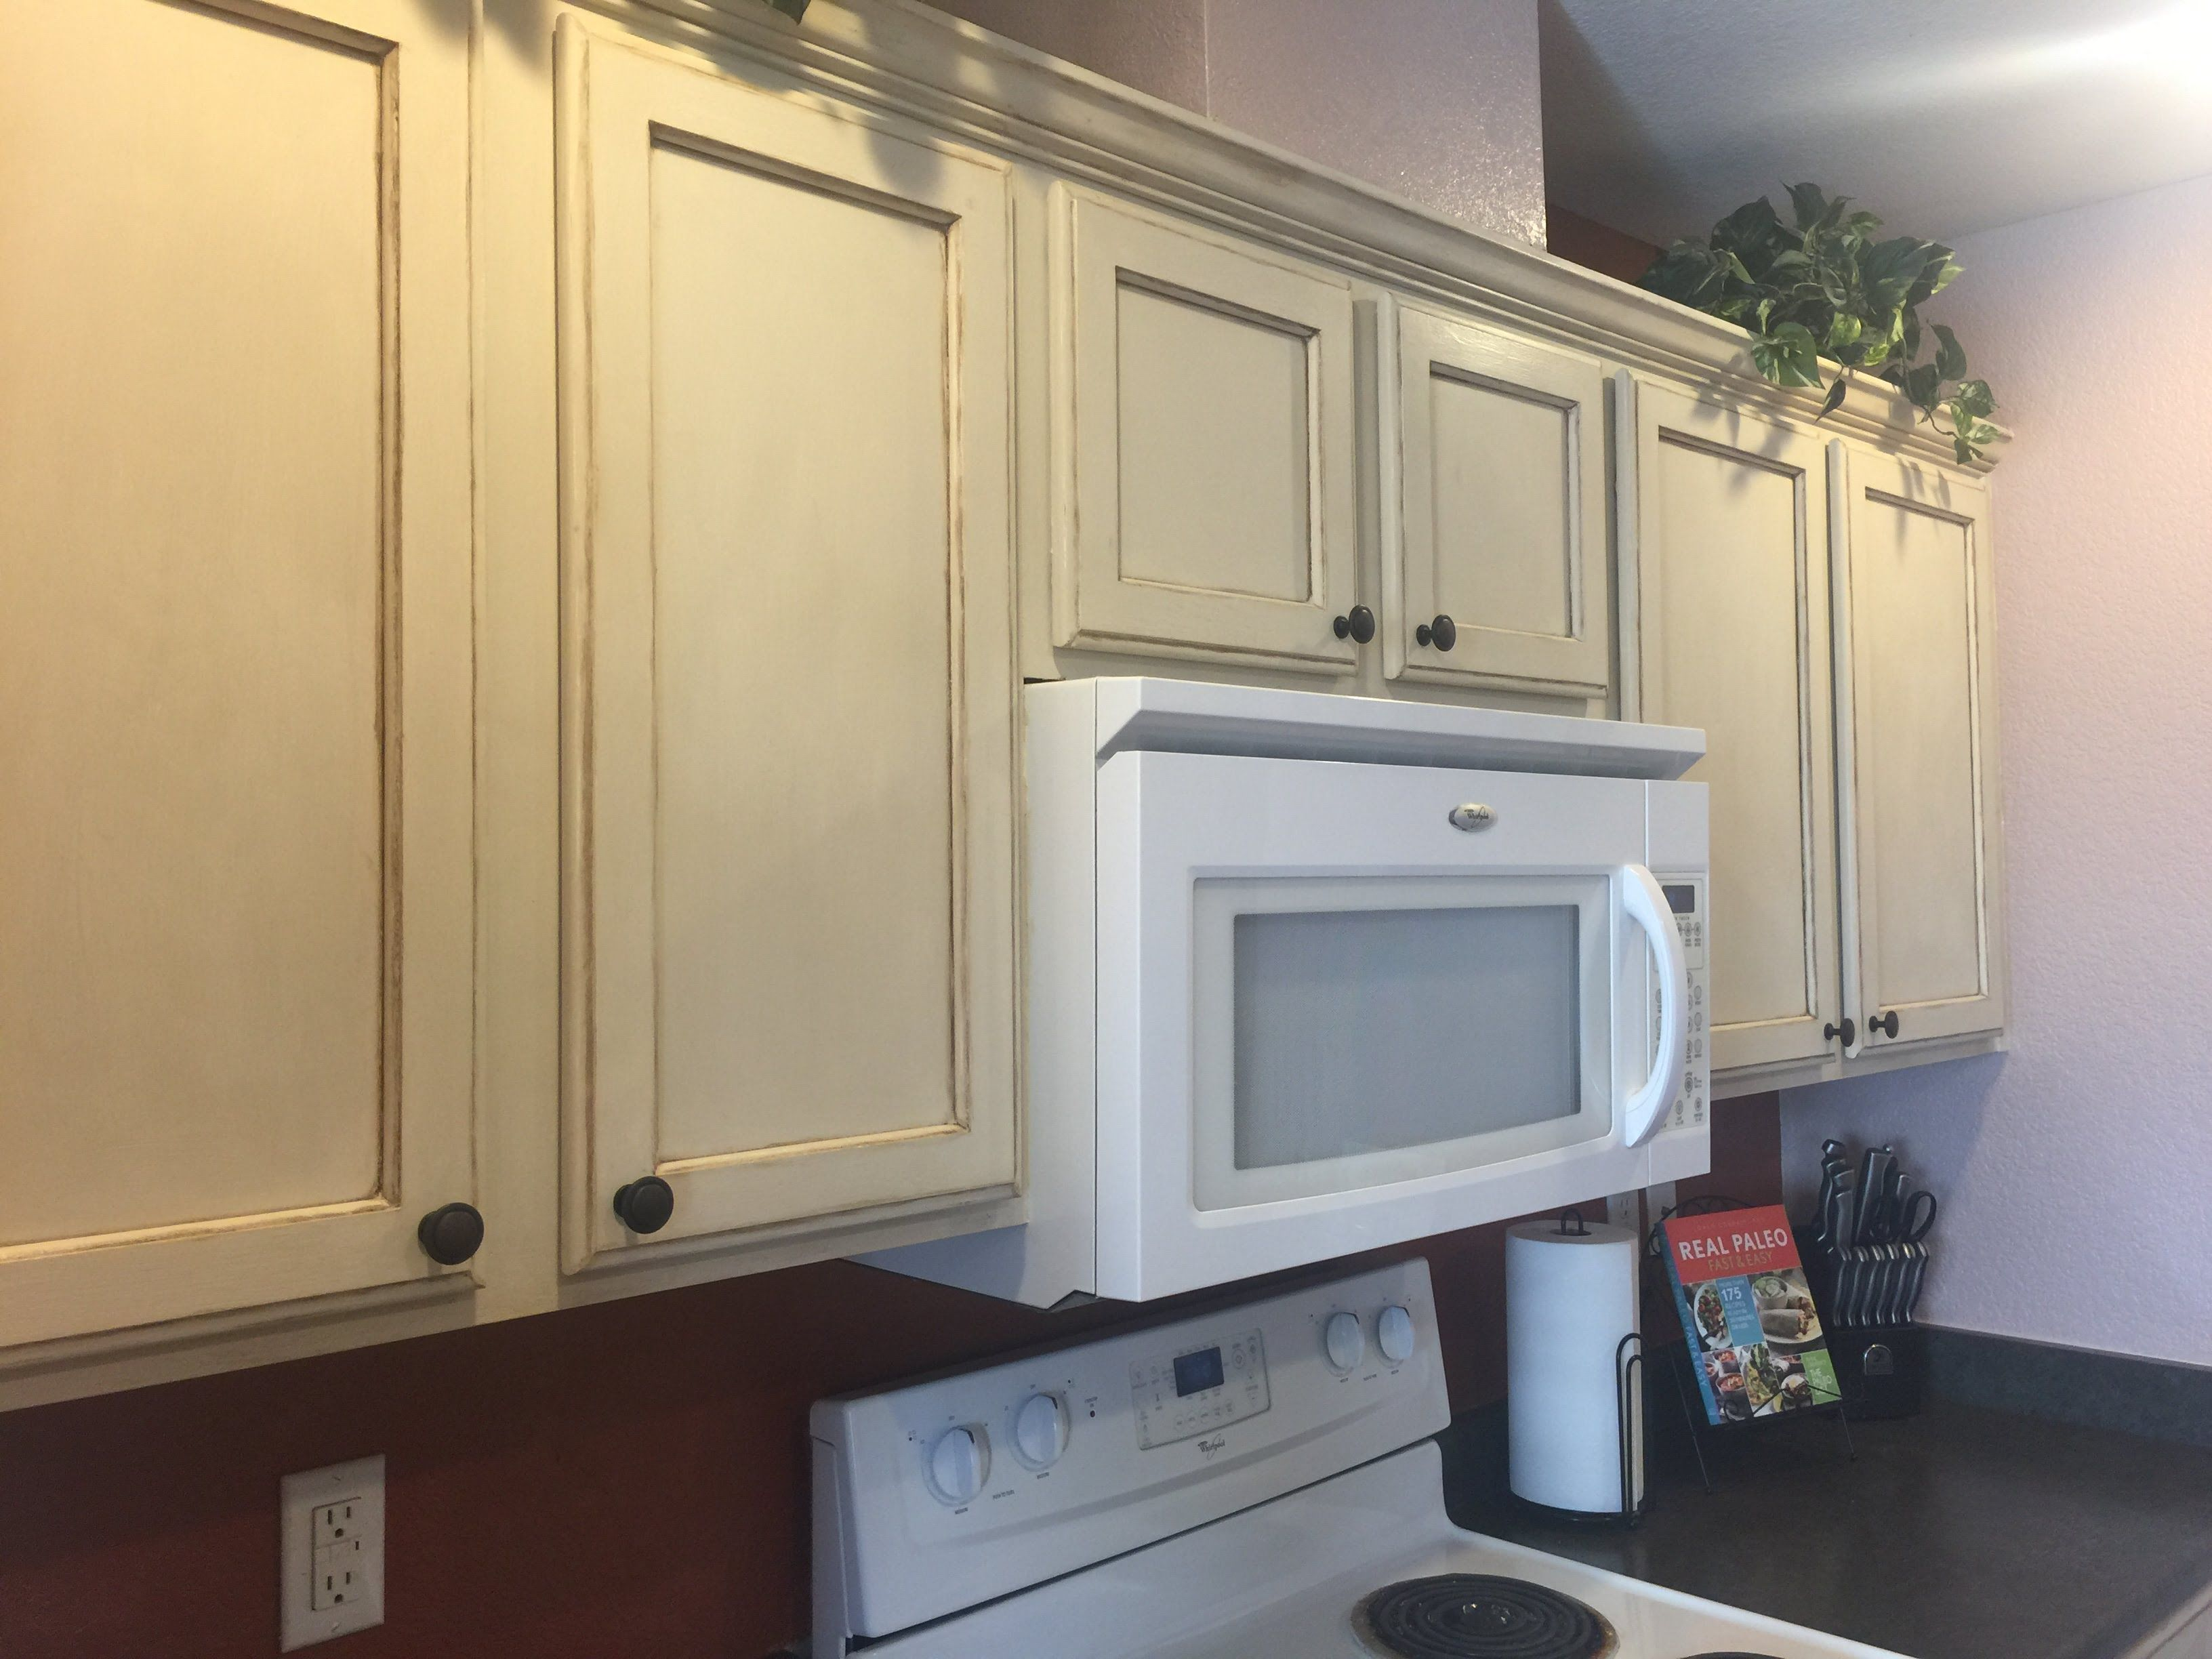 DIY Kitchen Cabinet Remodel With Annie Sloan Chalk Paint YouTube - Chalk paint kitchen cabinets how durable